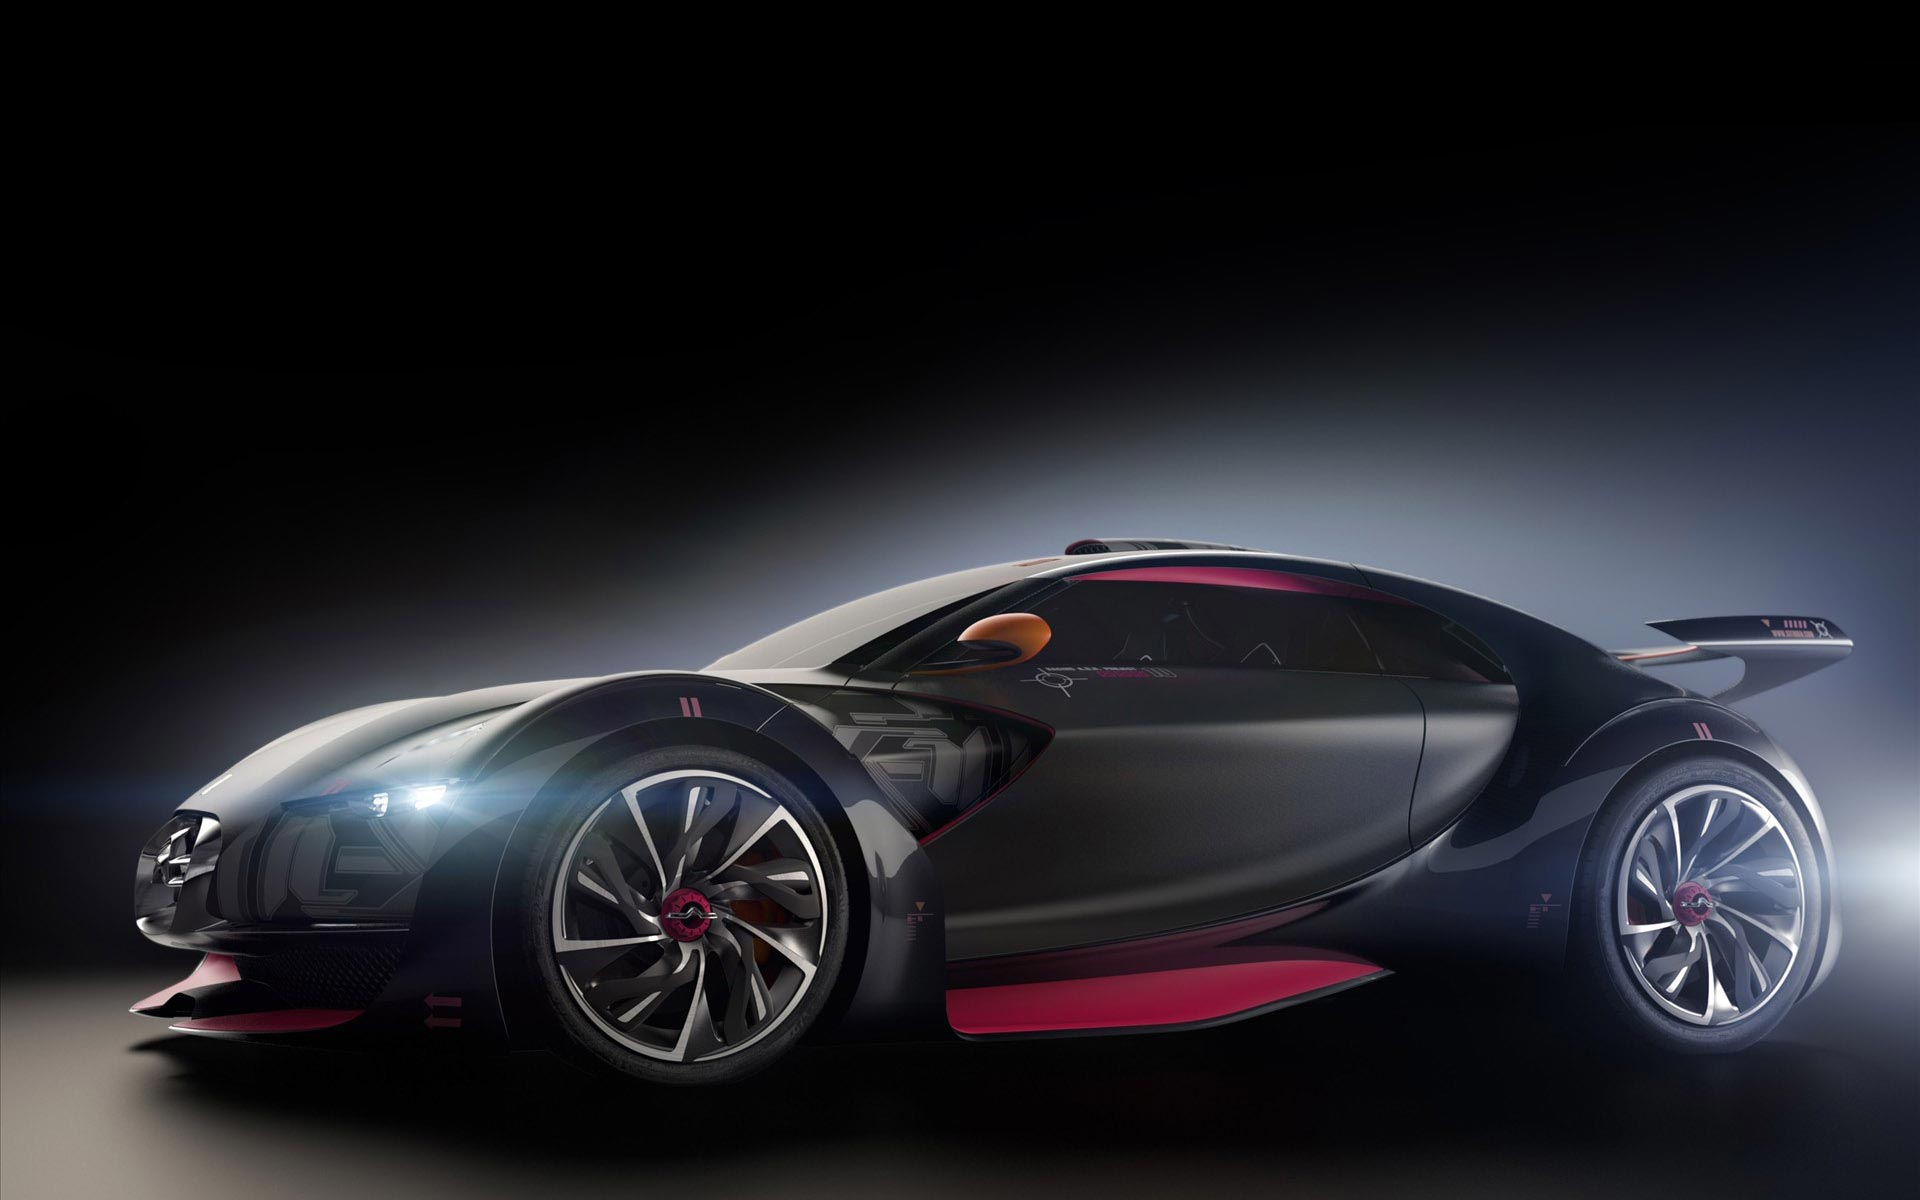 Sports Cars New Tab Theme Hd Wallpapers